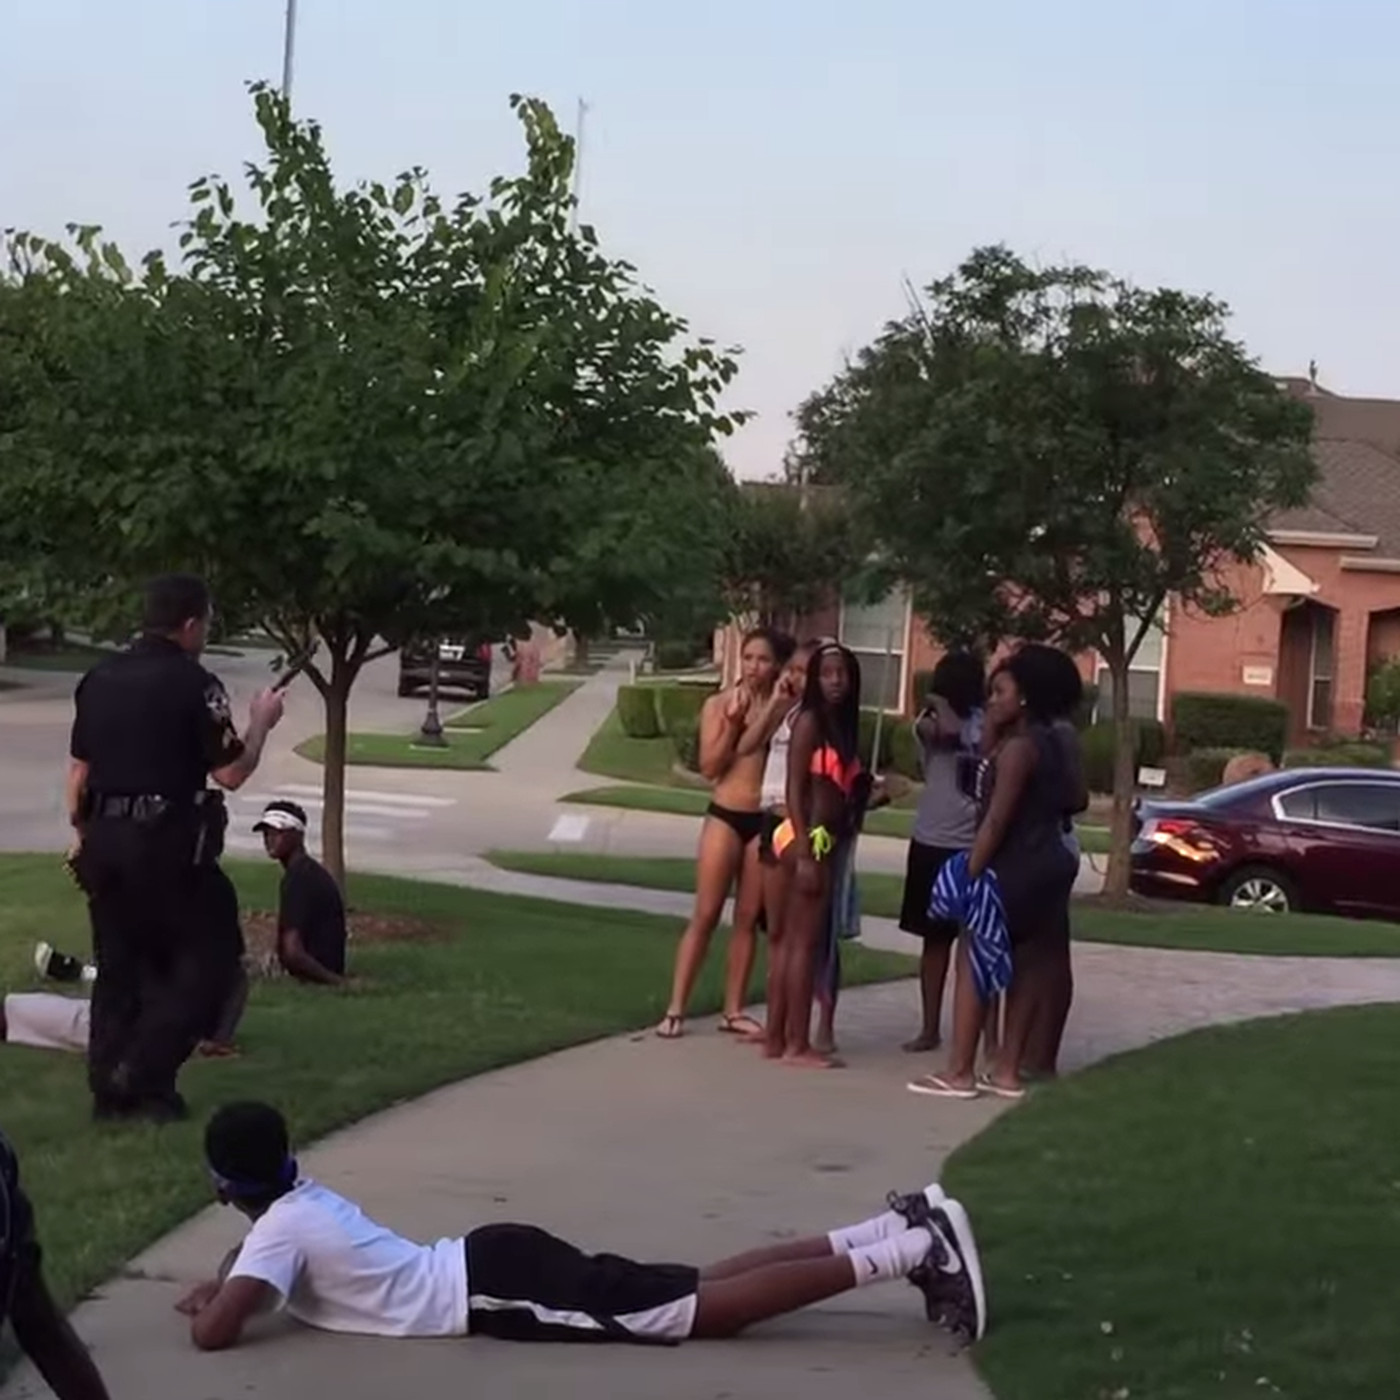 The Mckinney Texas Pool Party Shows Racial Segregation Is Still Alive In America Vox